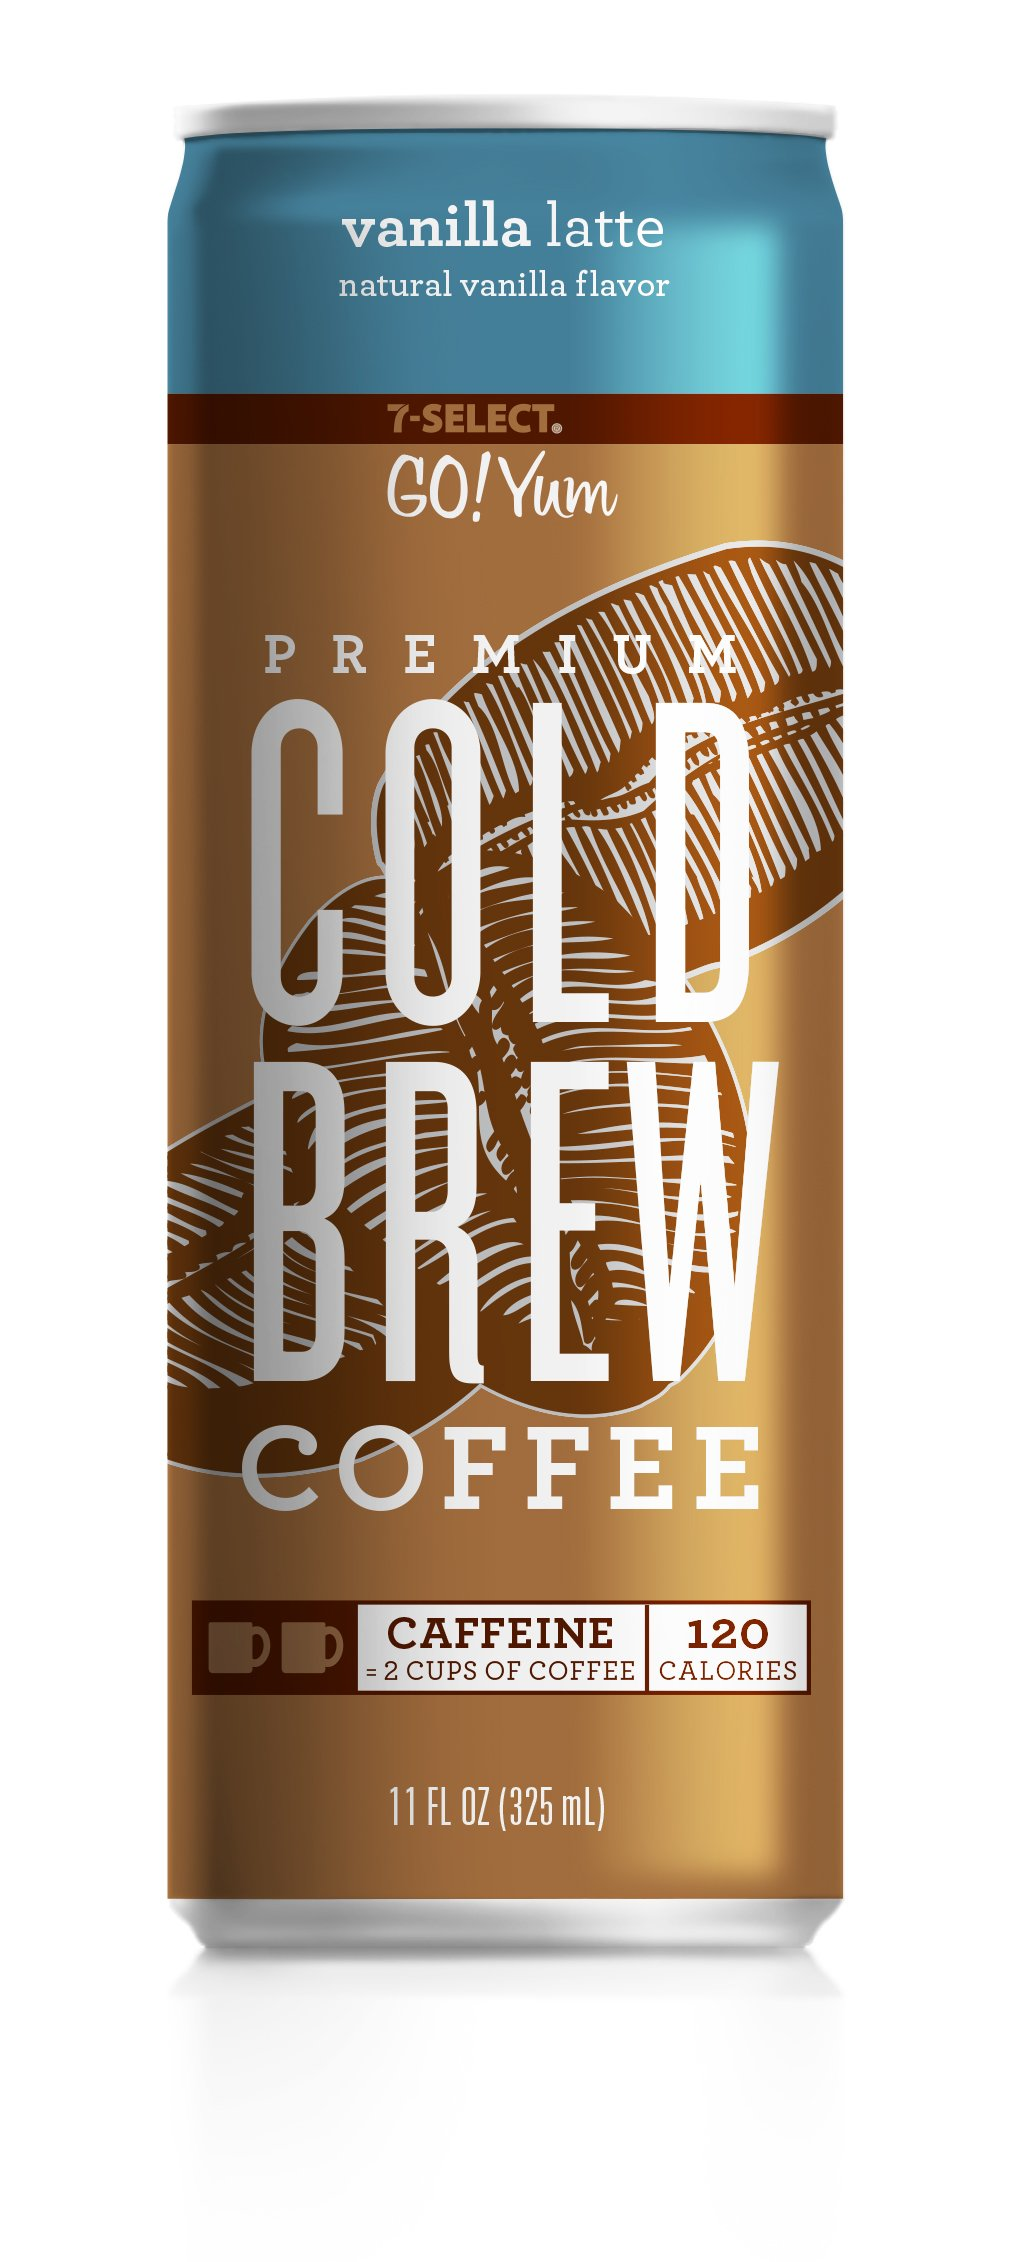 7-Select Premium Cold Brew Coffee-Vanilla Latte, 11 Ounce Cans (12 Pack)